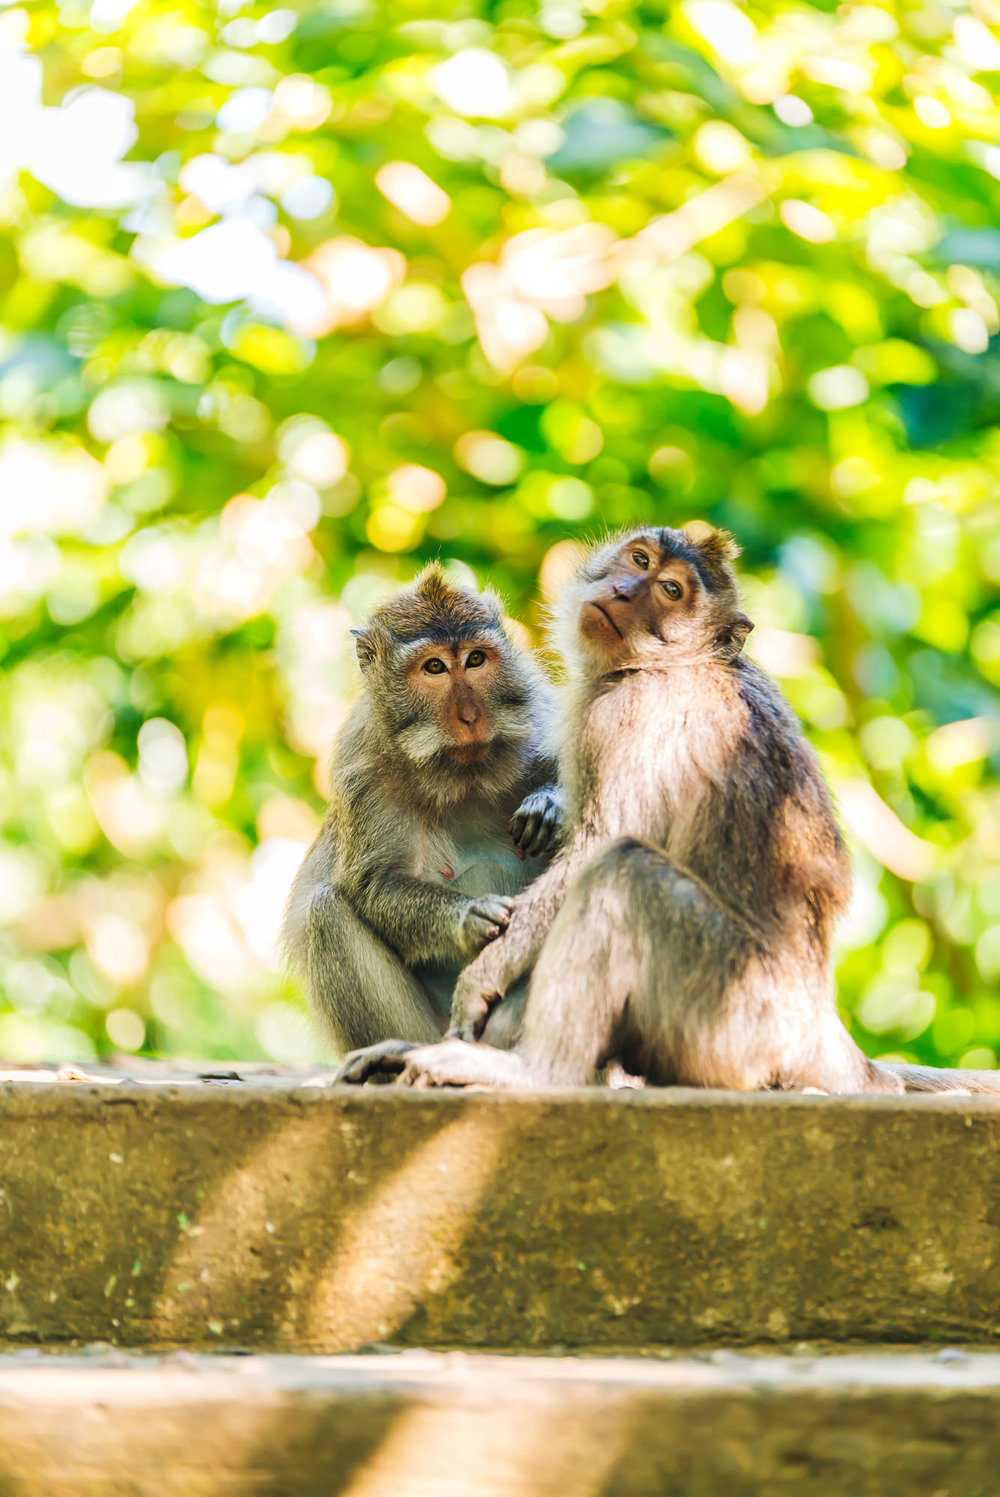 Balinese long-tailed monkeys